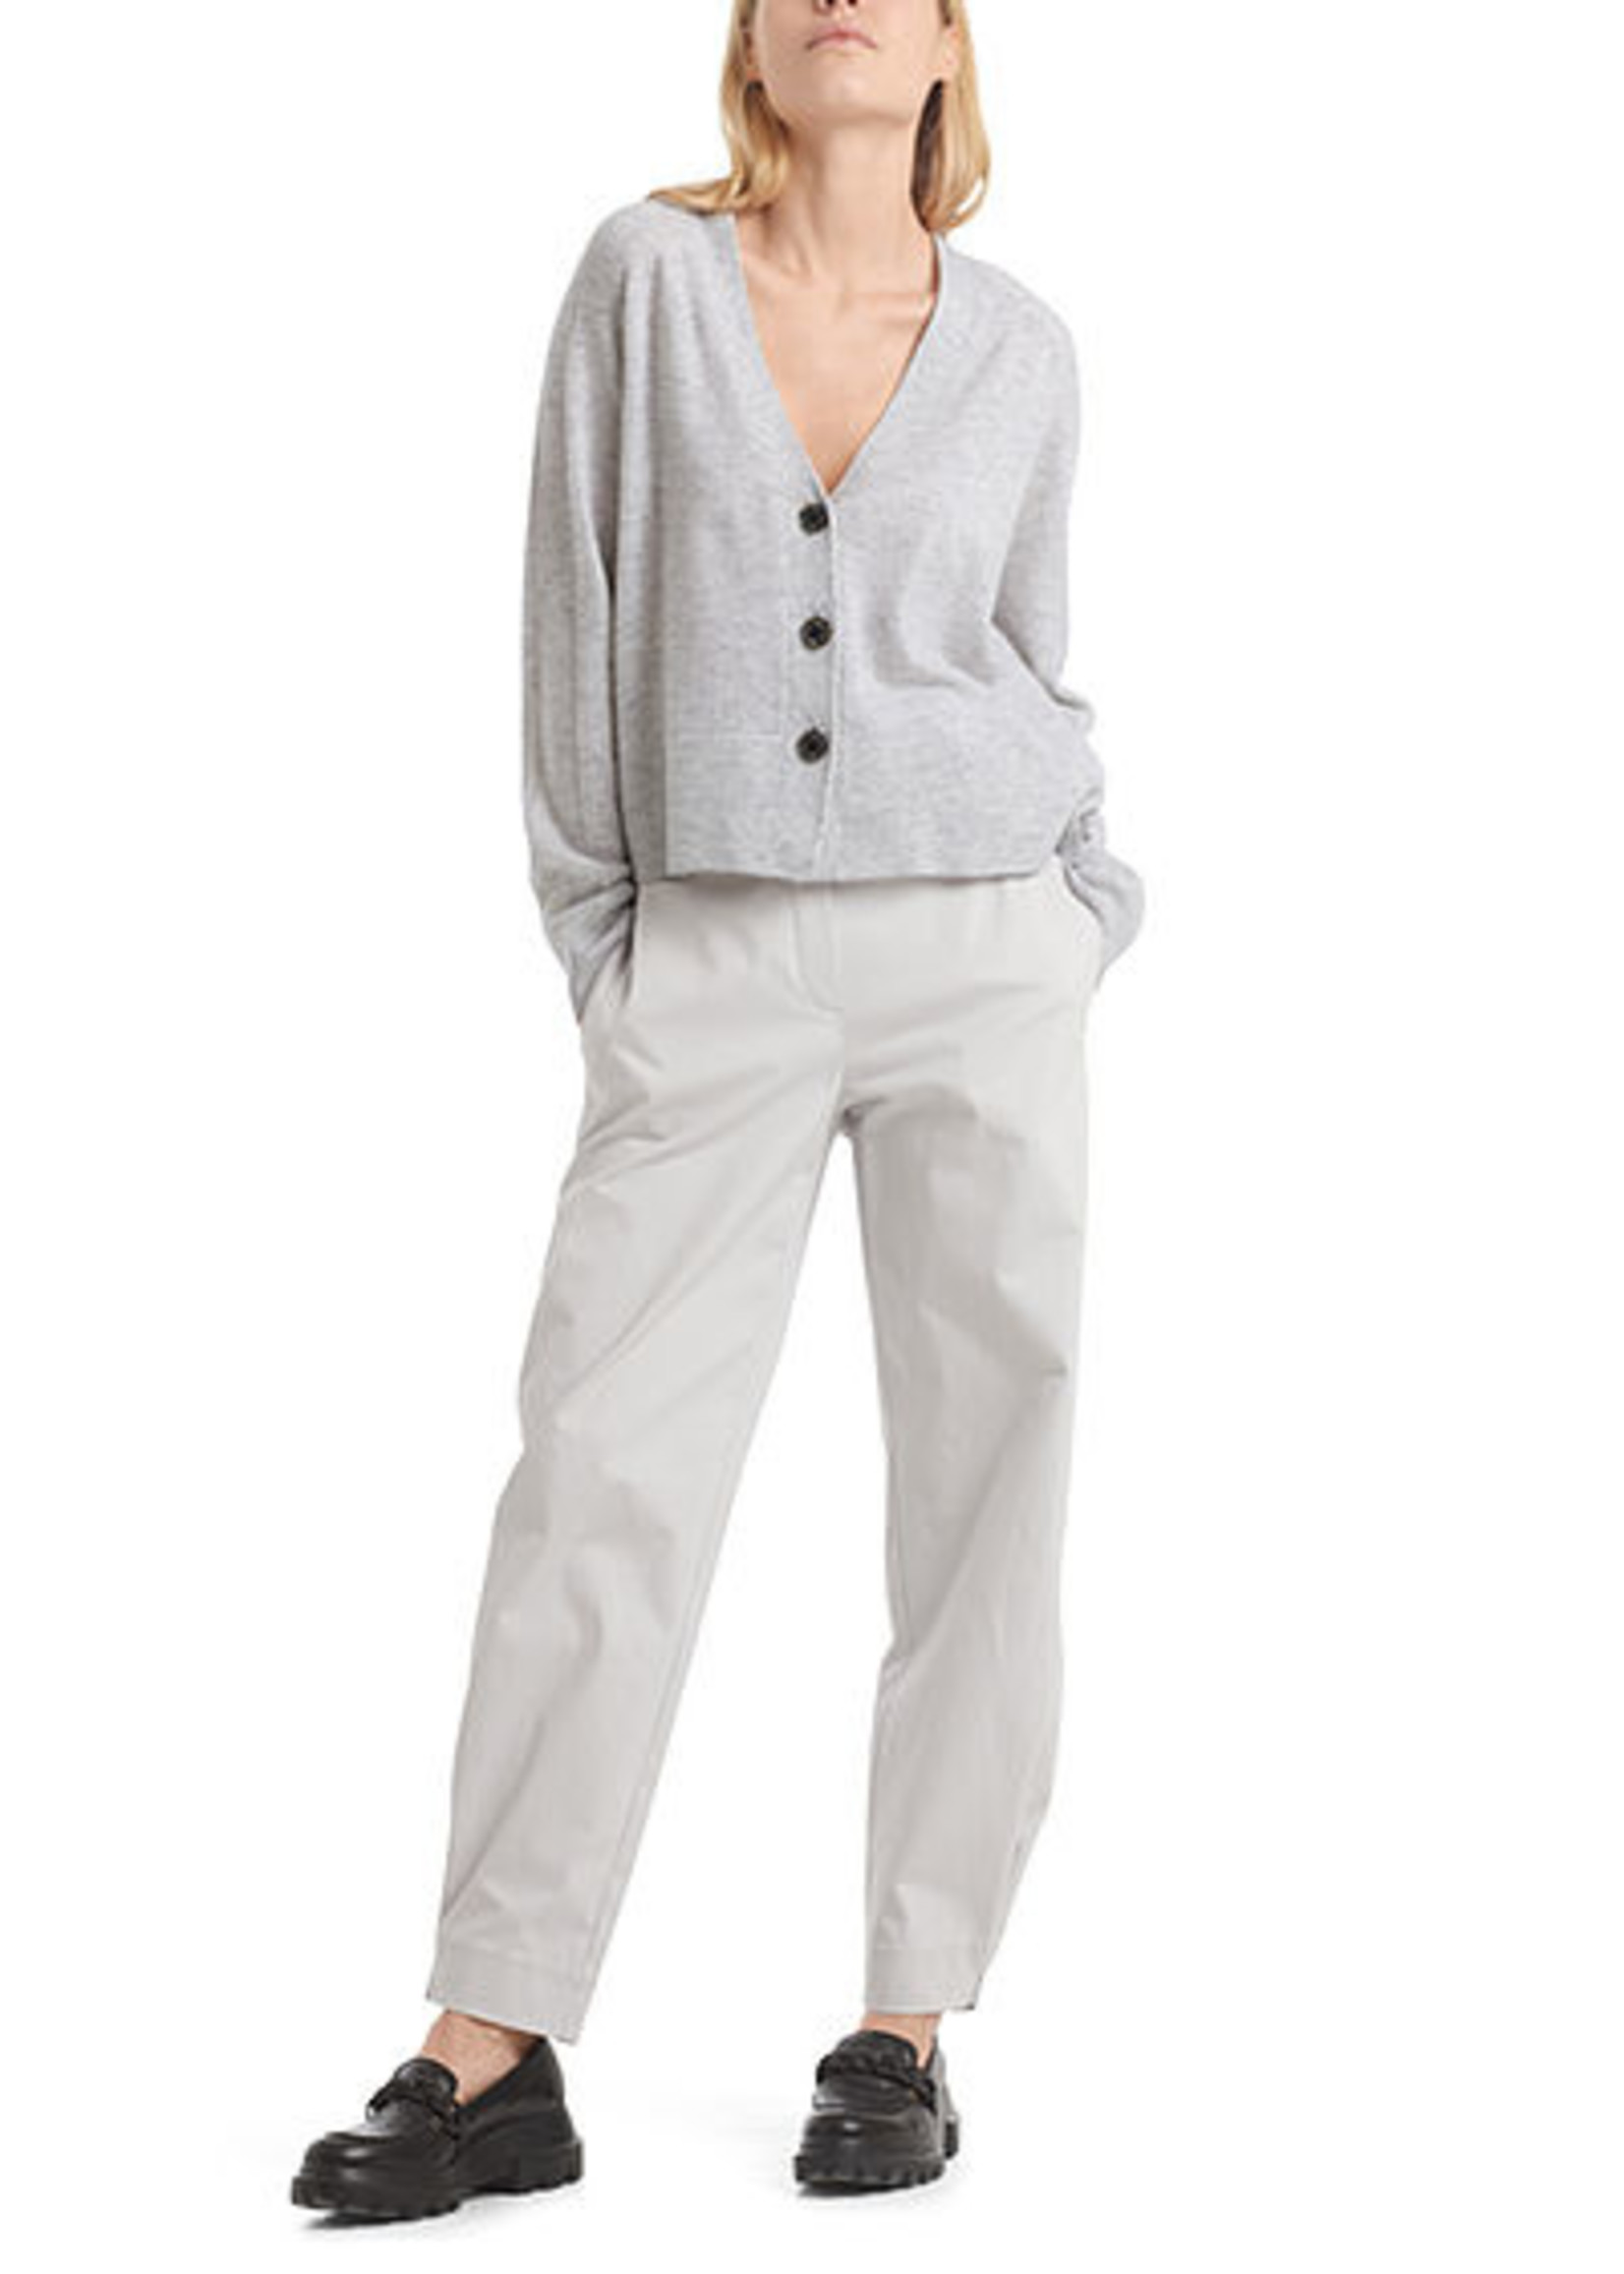 Marccain Sports Jack RS 31.06 M52 silver grey